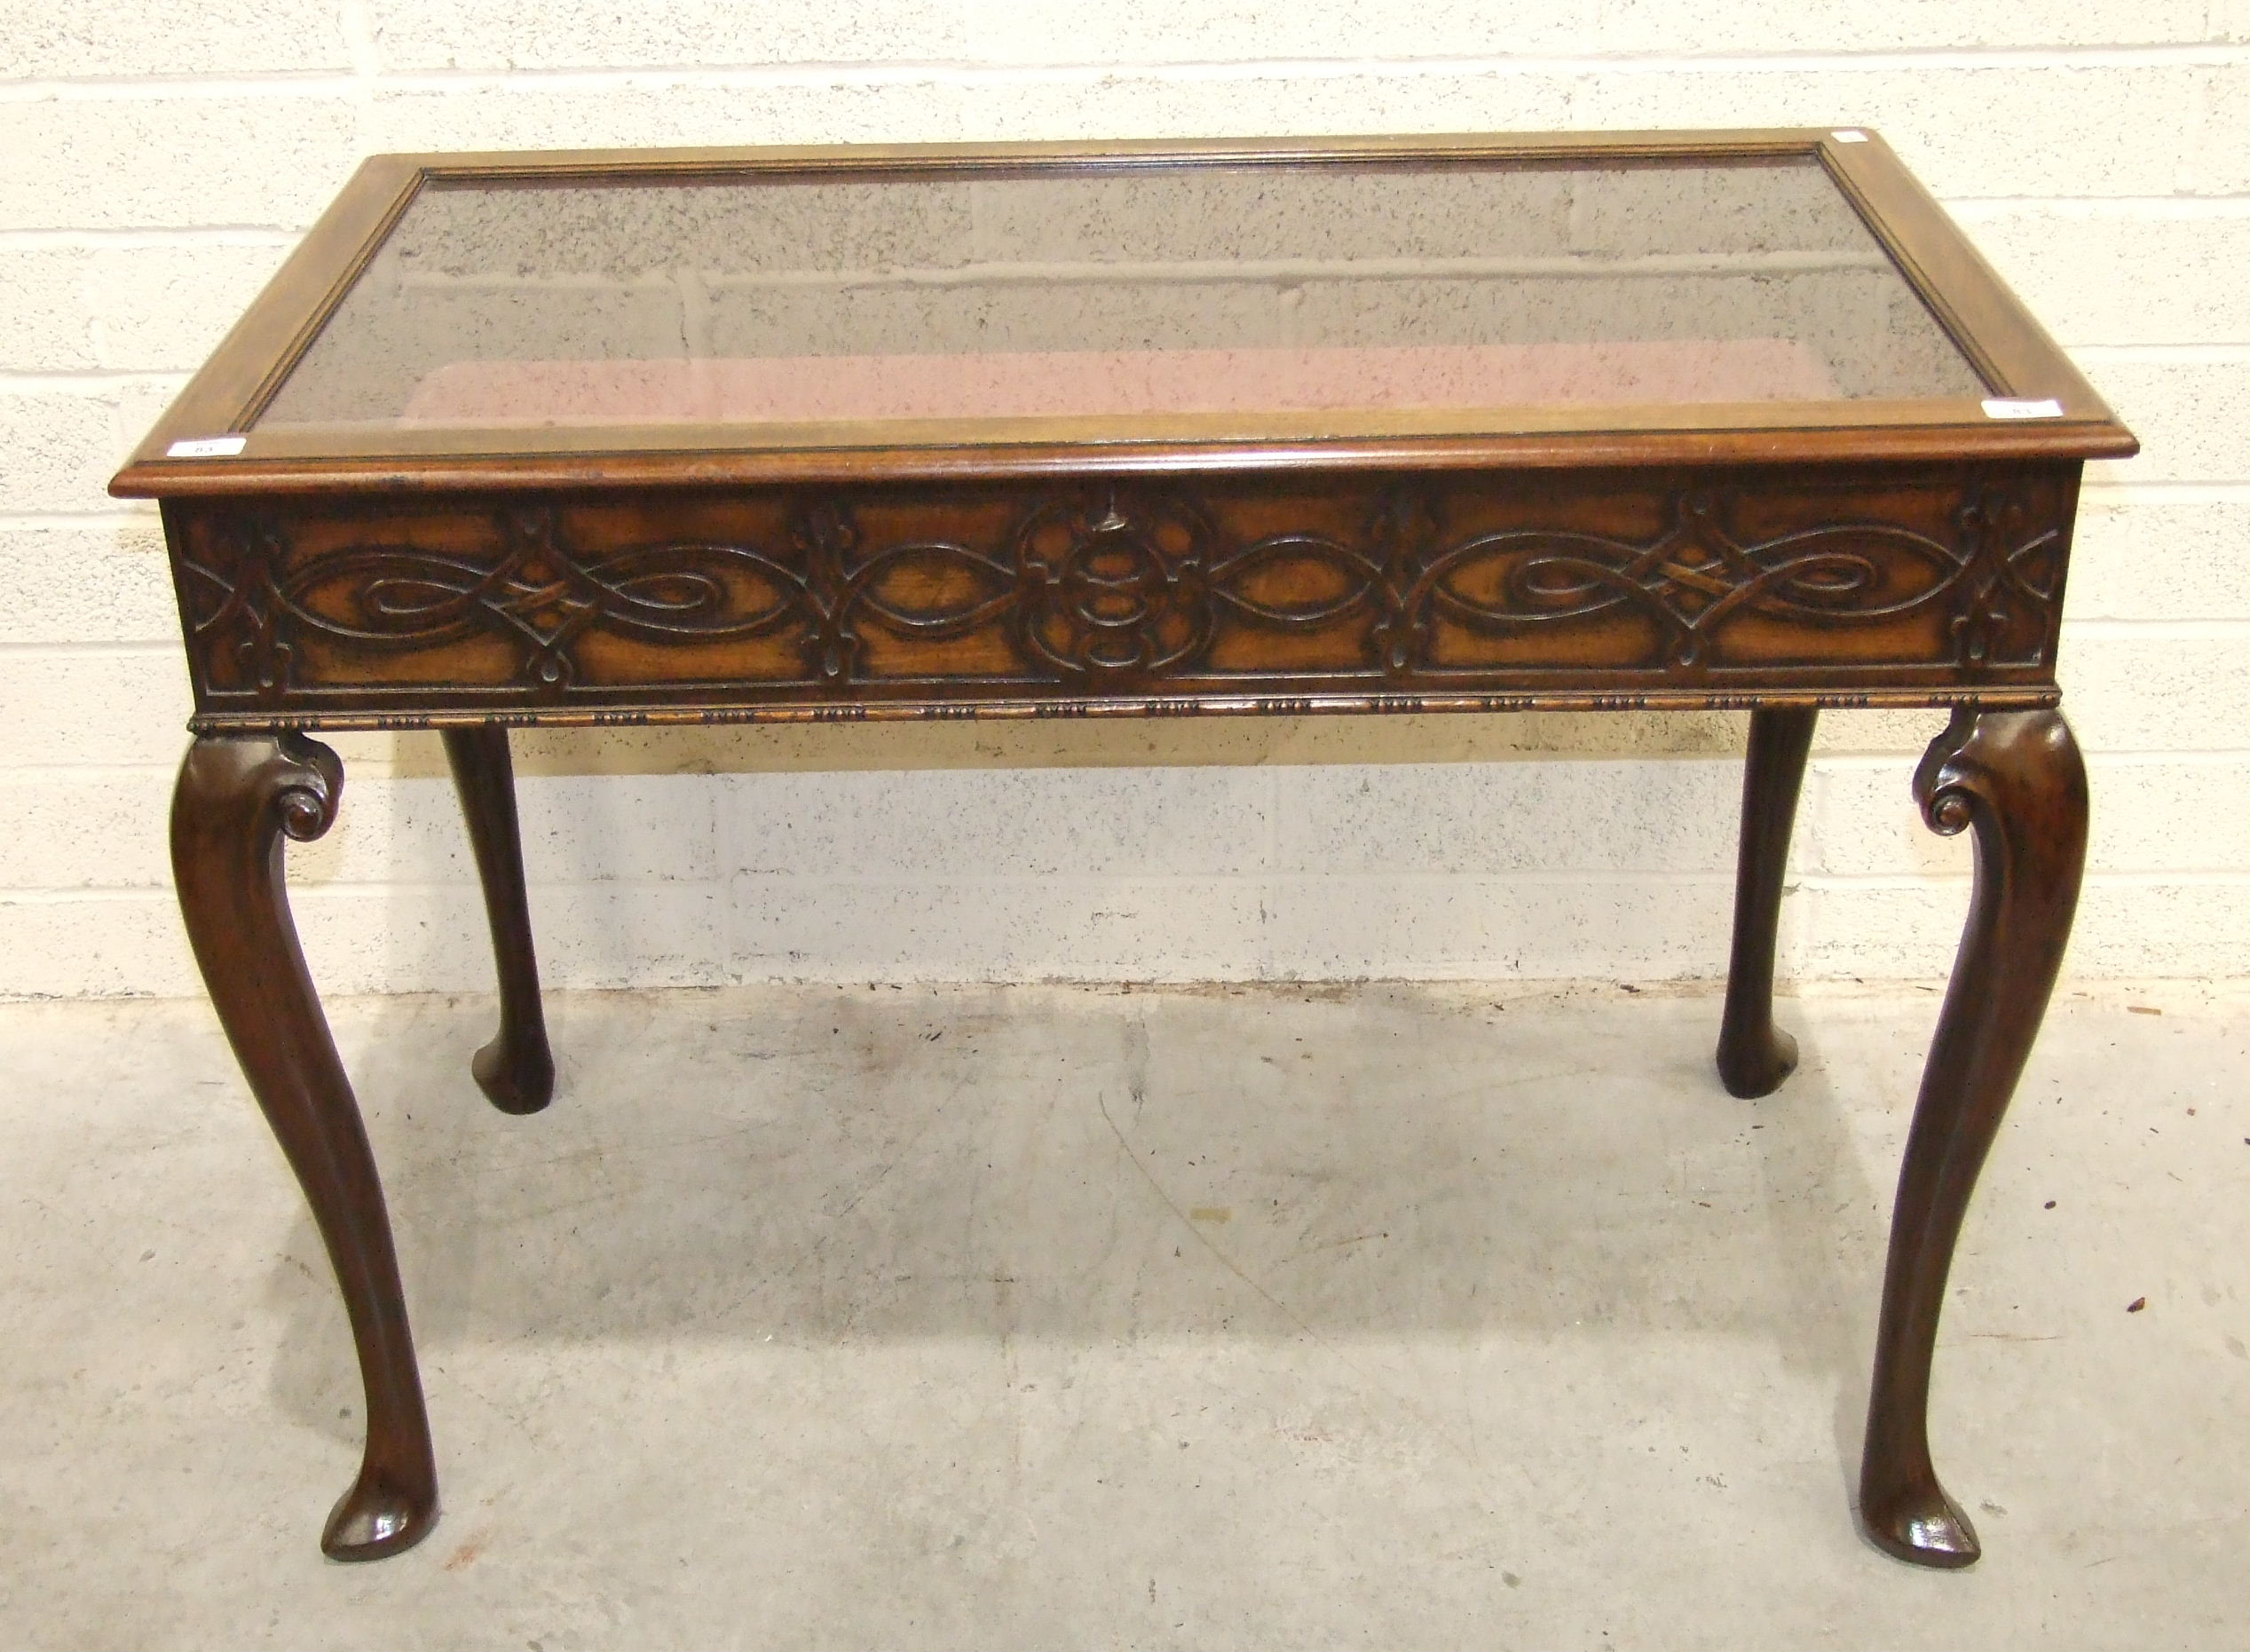 Lot 83 - A 20th century mahogany display table, the glazed top with blind fret frieze on cabriole legs, 105